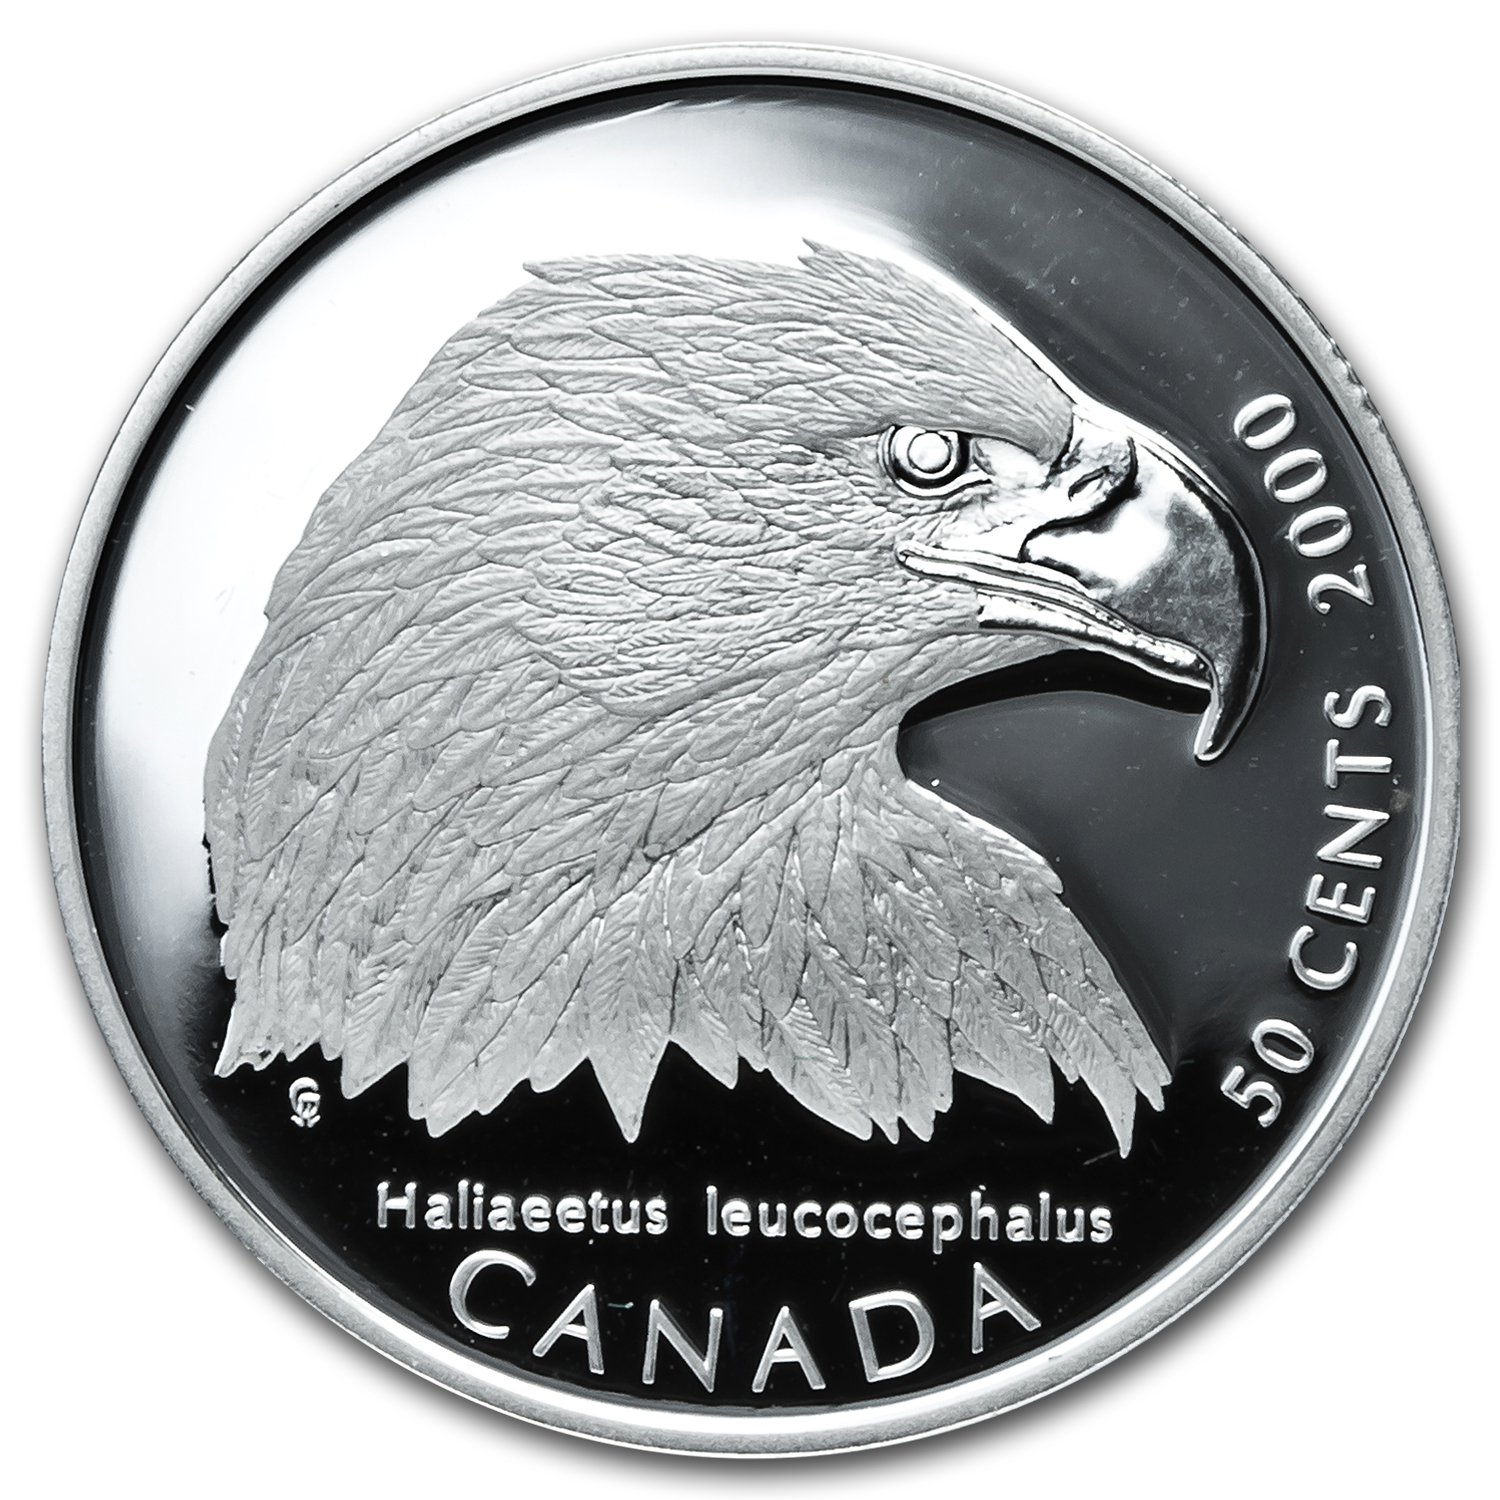 2000 Canada 4-Coin Silver Birds of Prey Half Dollar Proof Set